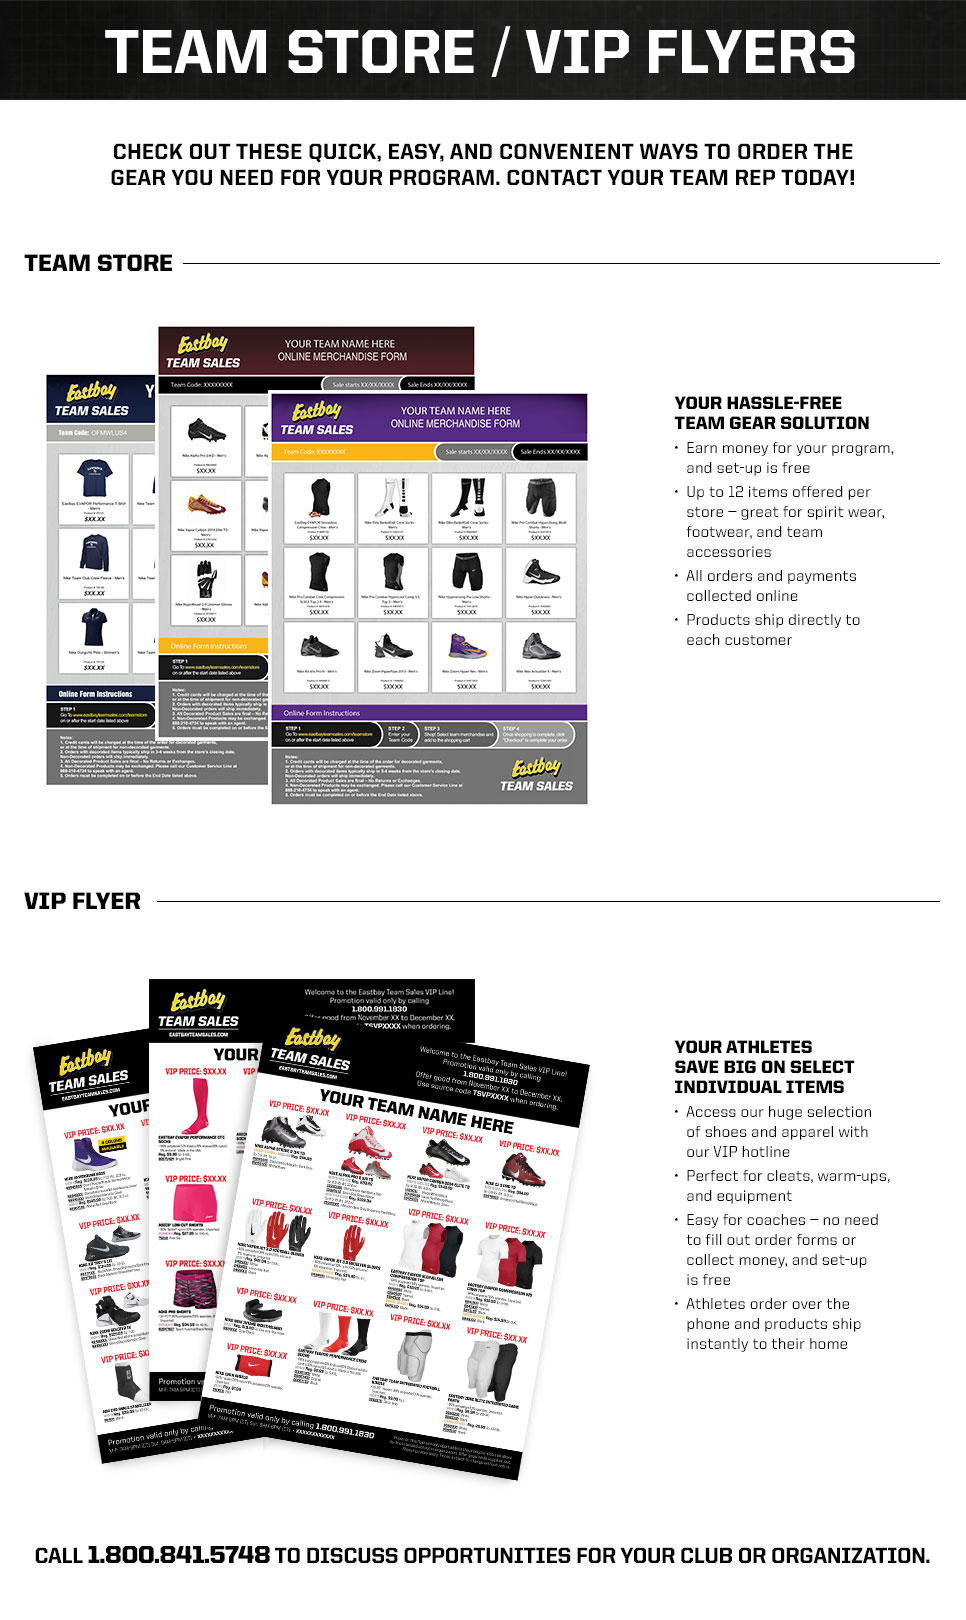 Eastbay Team Sales Store and VIP Flyer Information